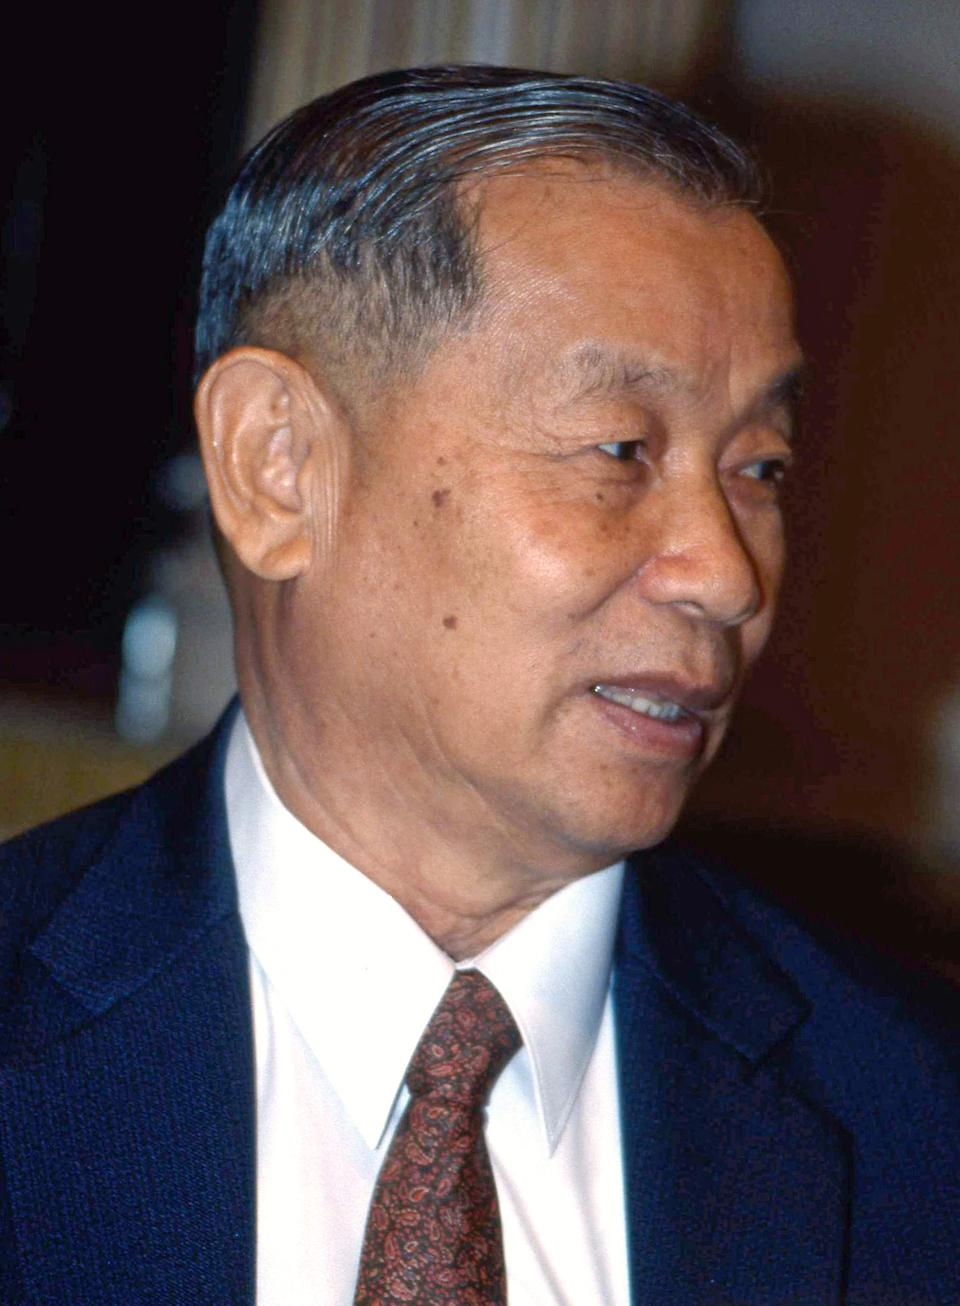 In this undated photo, Thai billionaire Chaleo Yoovidhya is shown. Chaleo, who created the renowned Red Bull energy drink three decades ago, died of natural causes at the age of 89 on Saturday, March 17, 2012, Thai state media said. (AP Photo/Matichon Newspaper) THAILAND OUT